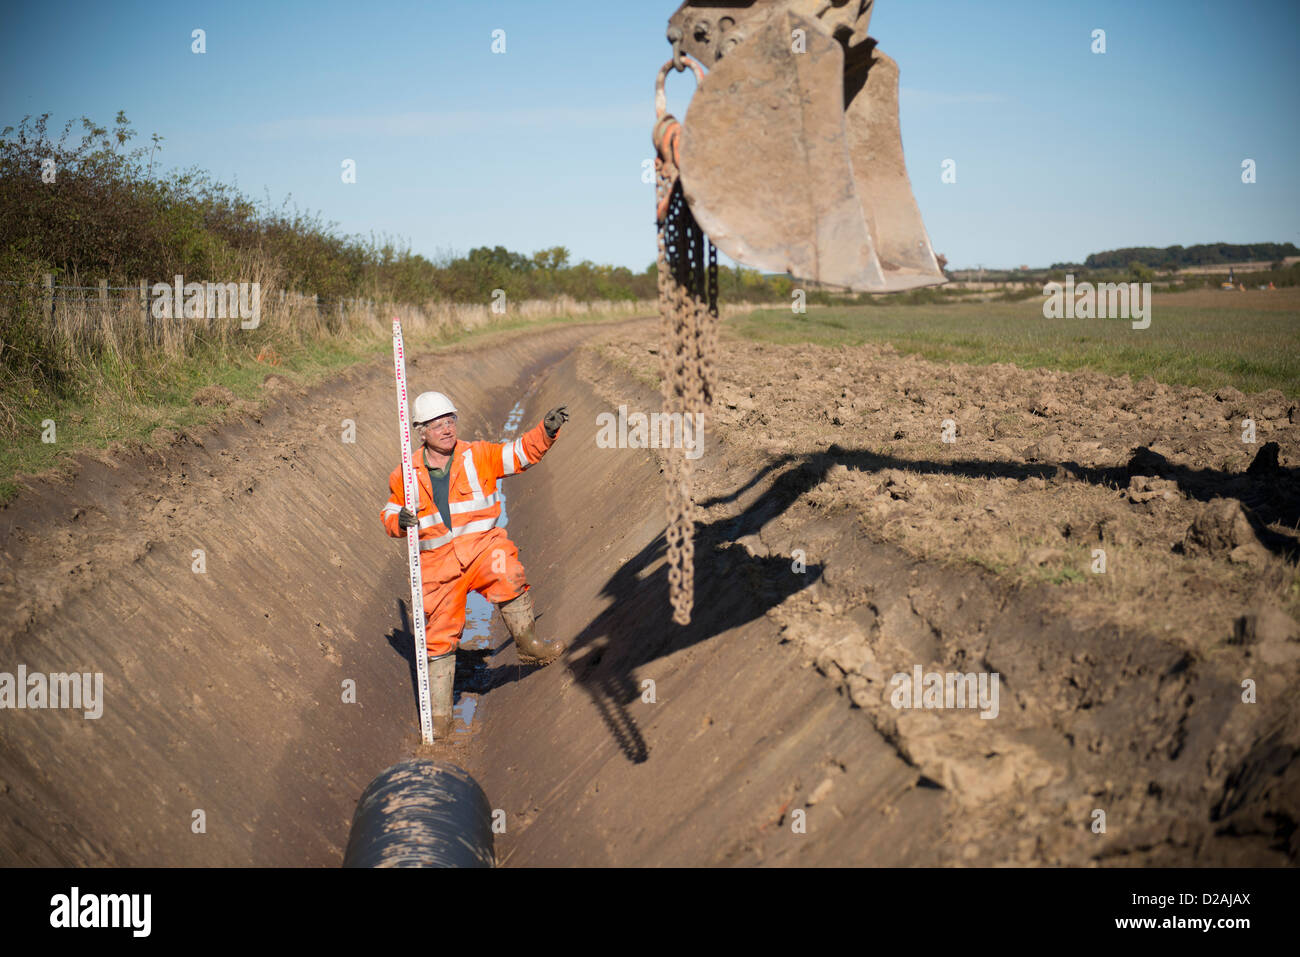 Worker directing digger in surface mine - Stock Image